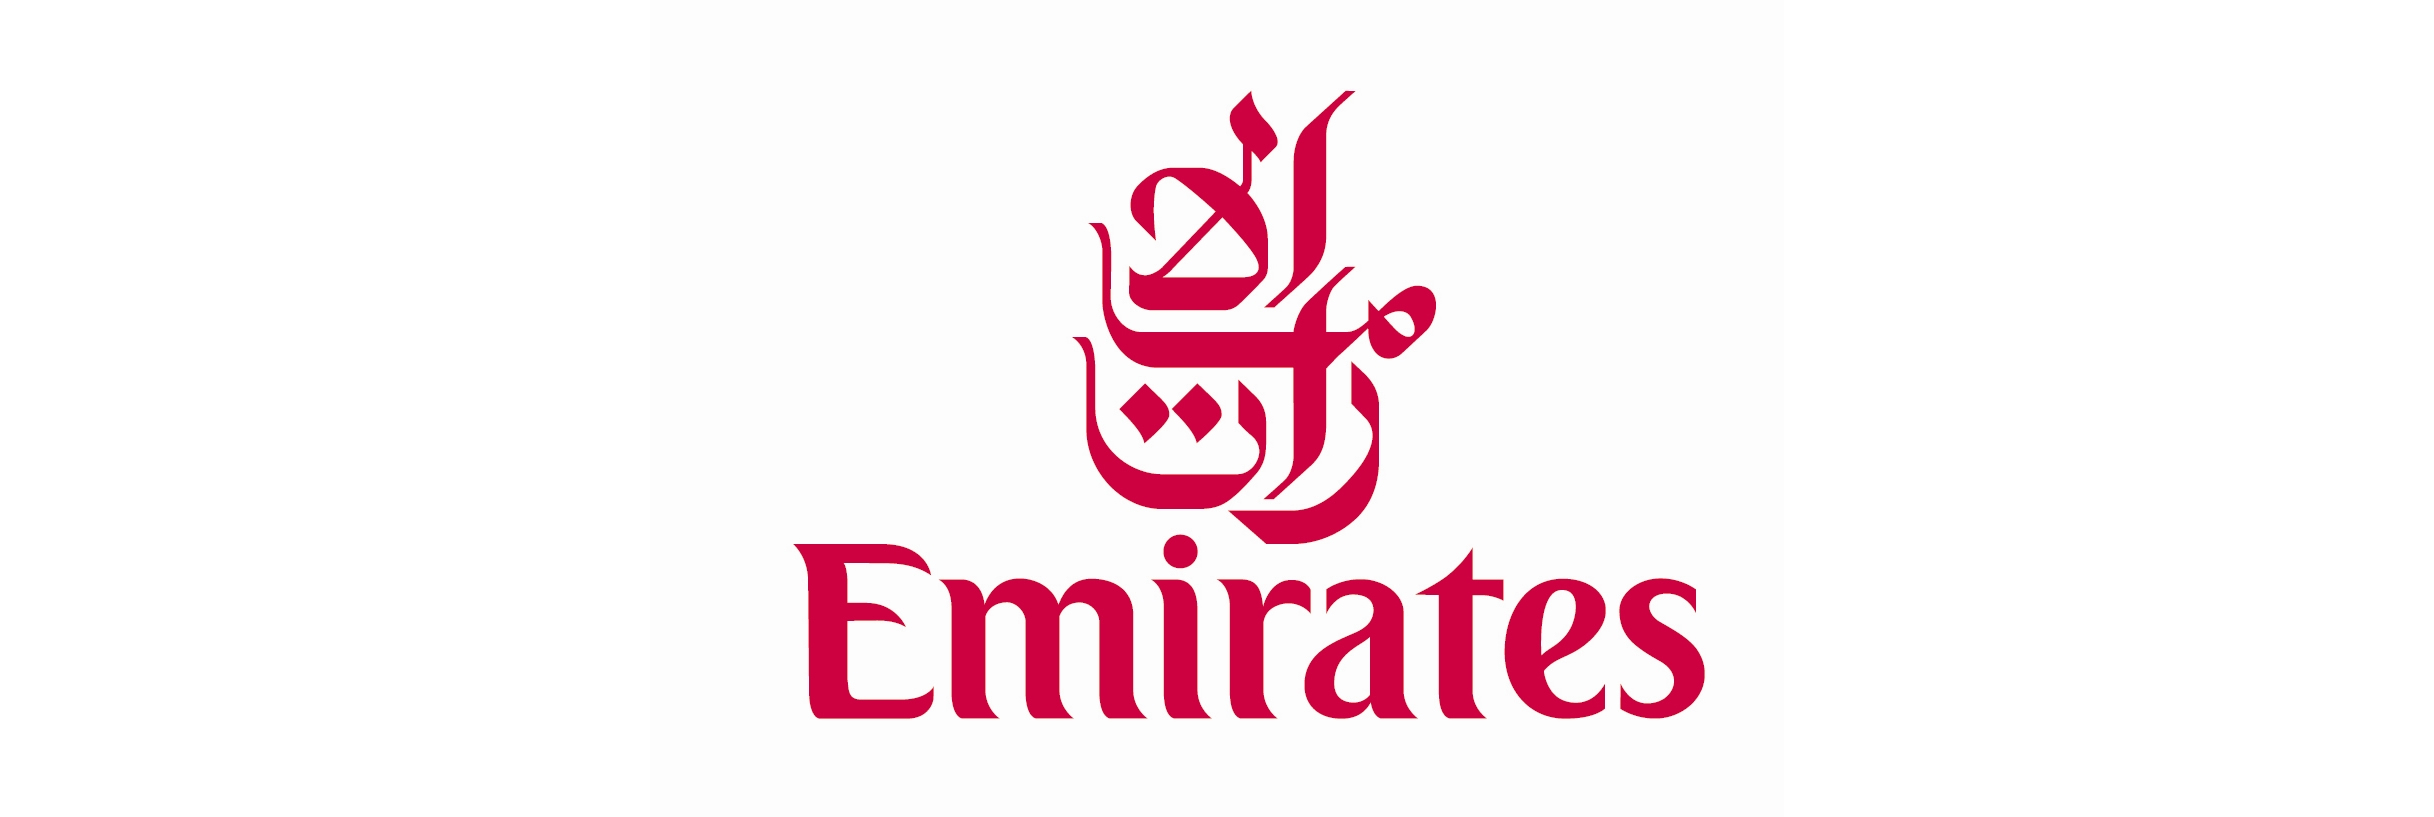 emirates tail logo - photo #34